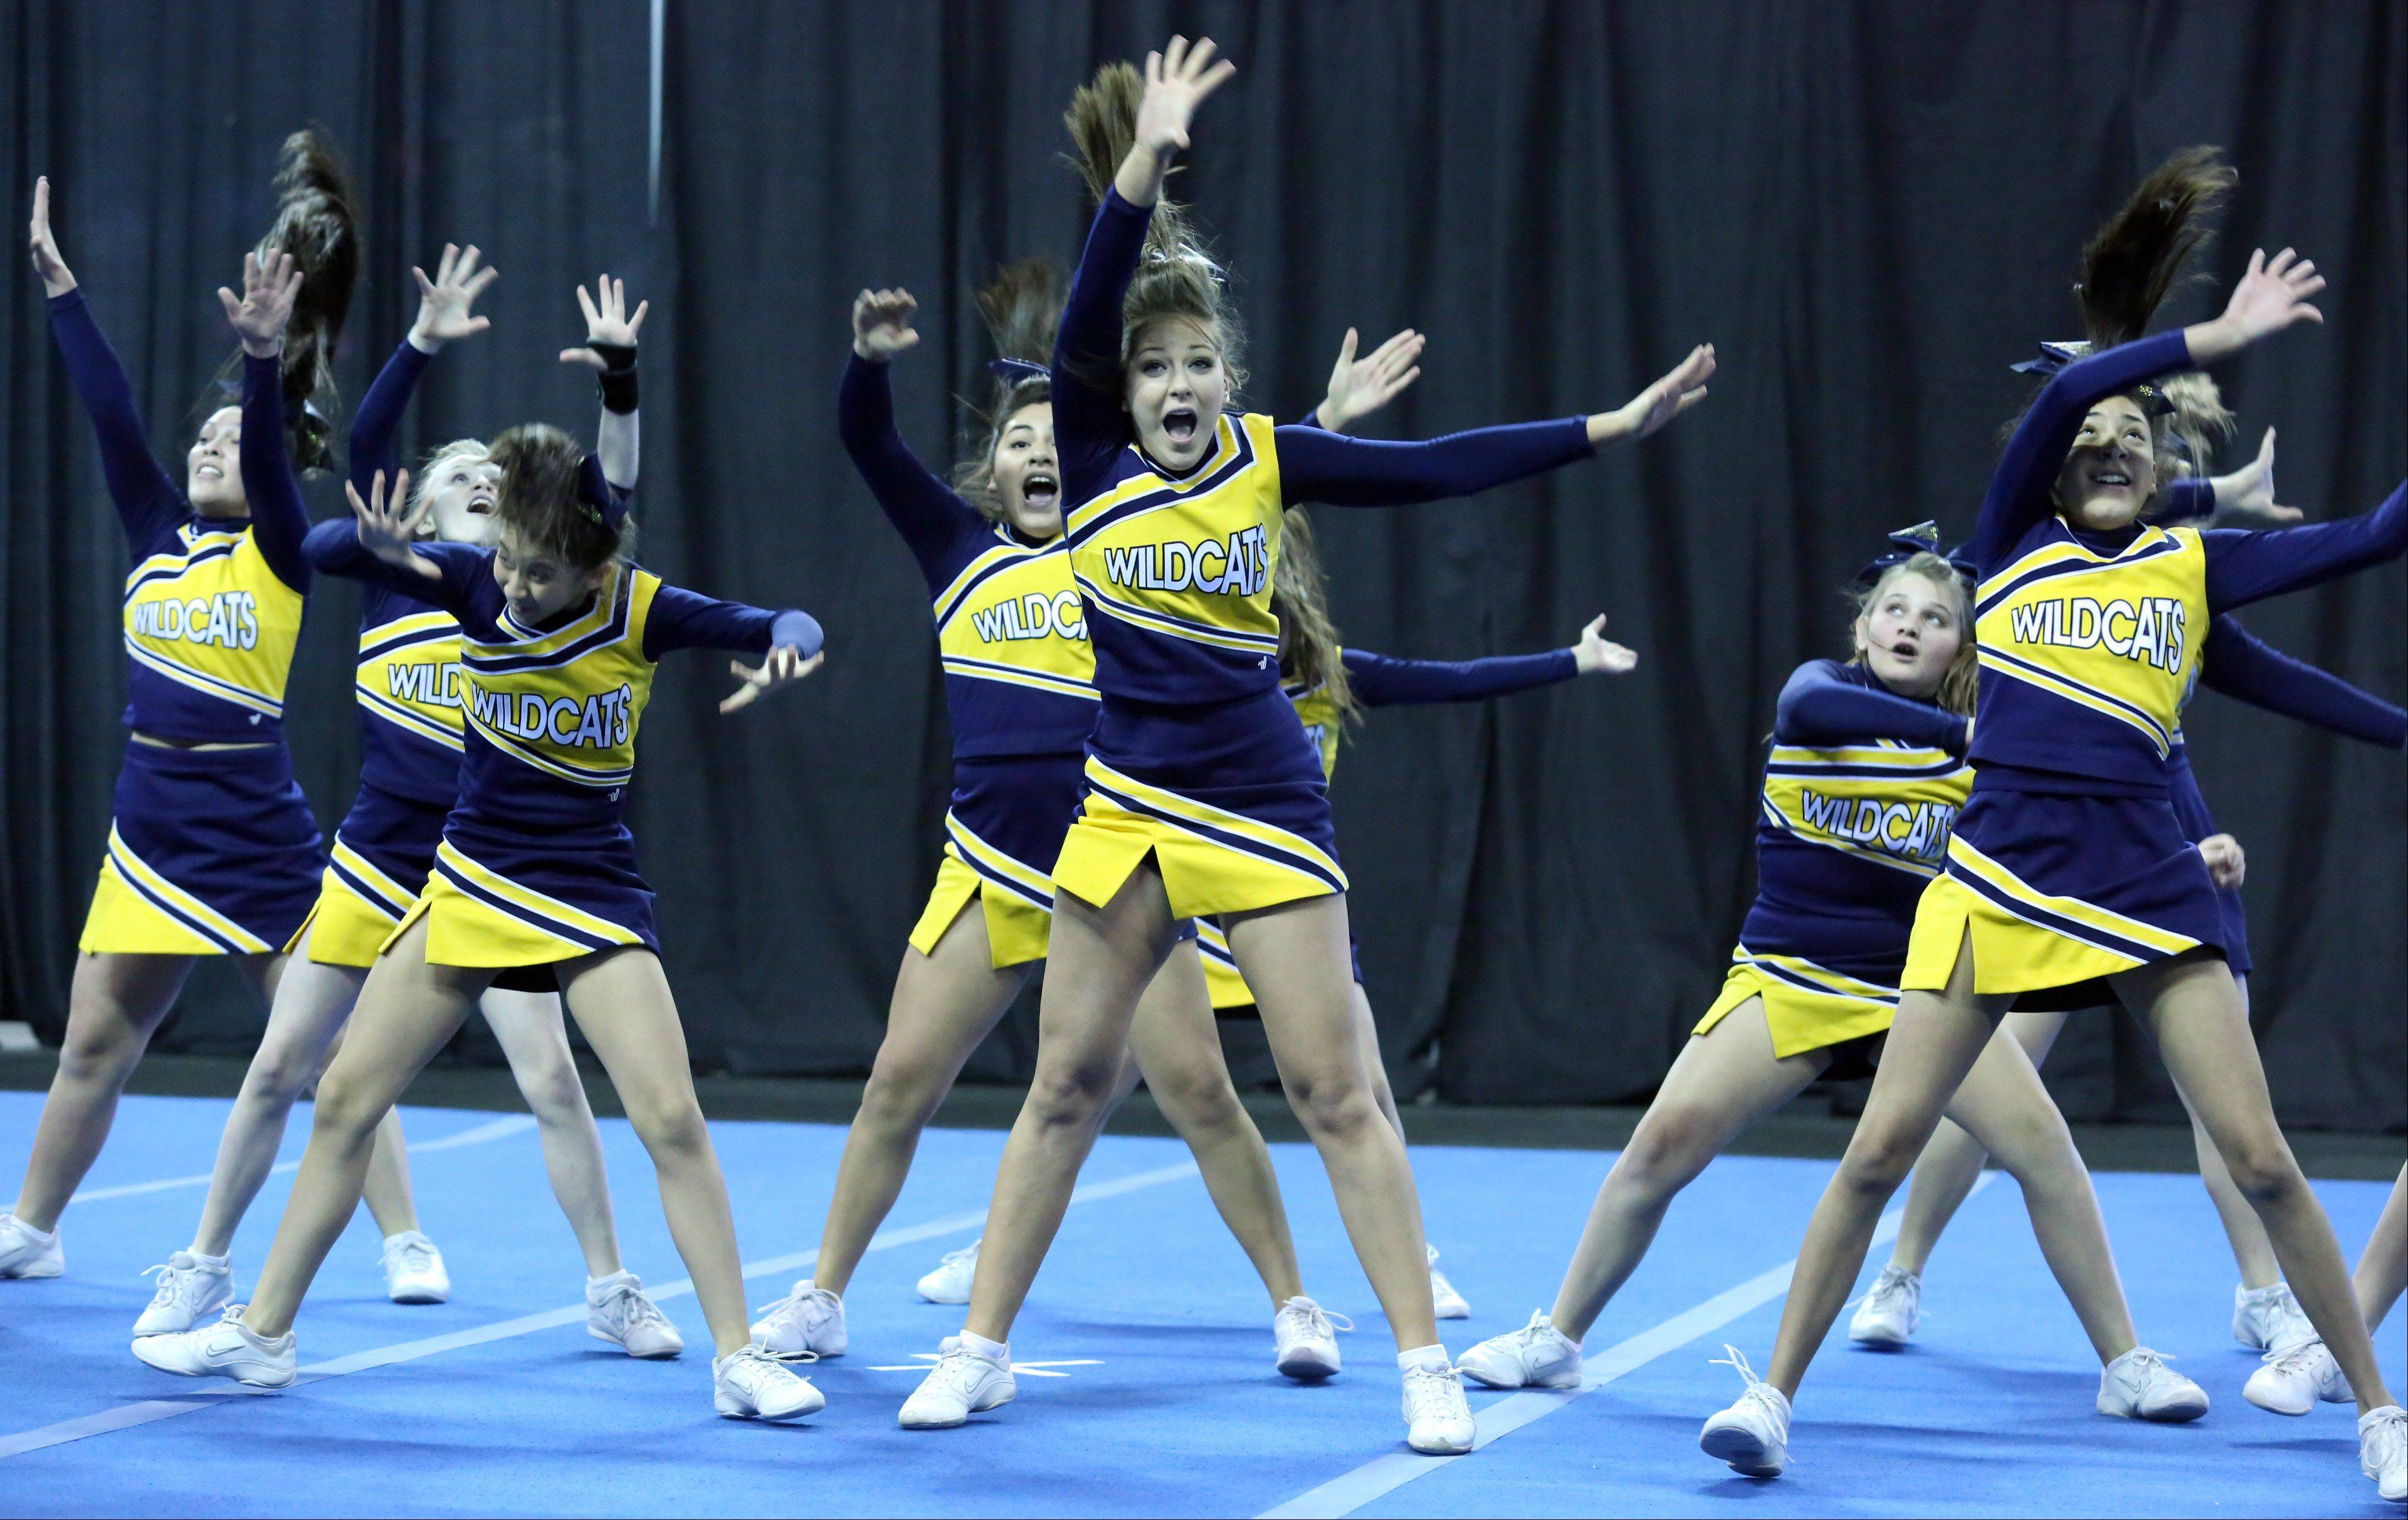 Round Lake Middle School cheer team competes in the IHSA Winter Meltdown Cheerleading and Dance Competition at Sears Centre Arena on Saturday in Hoffman Estates.